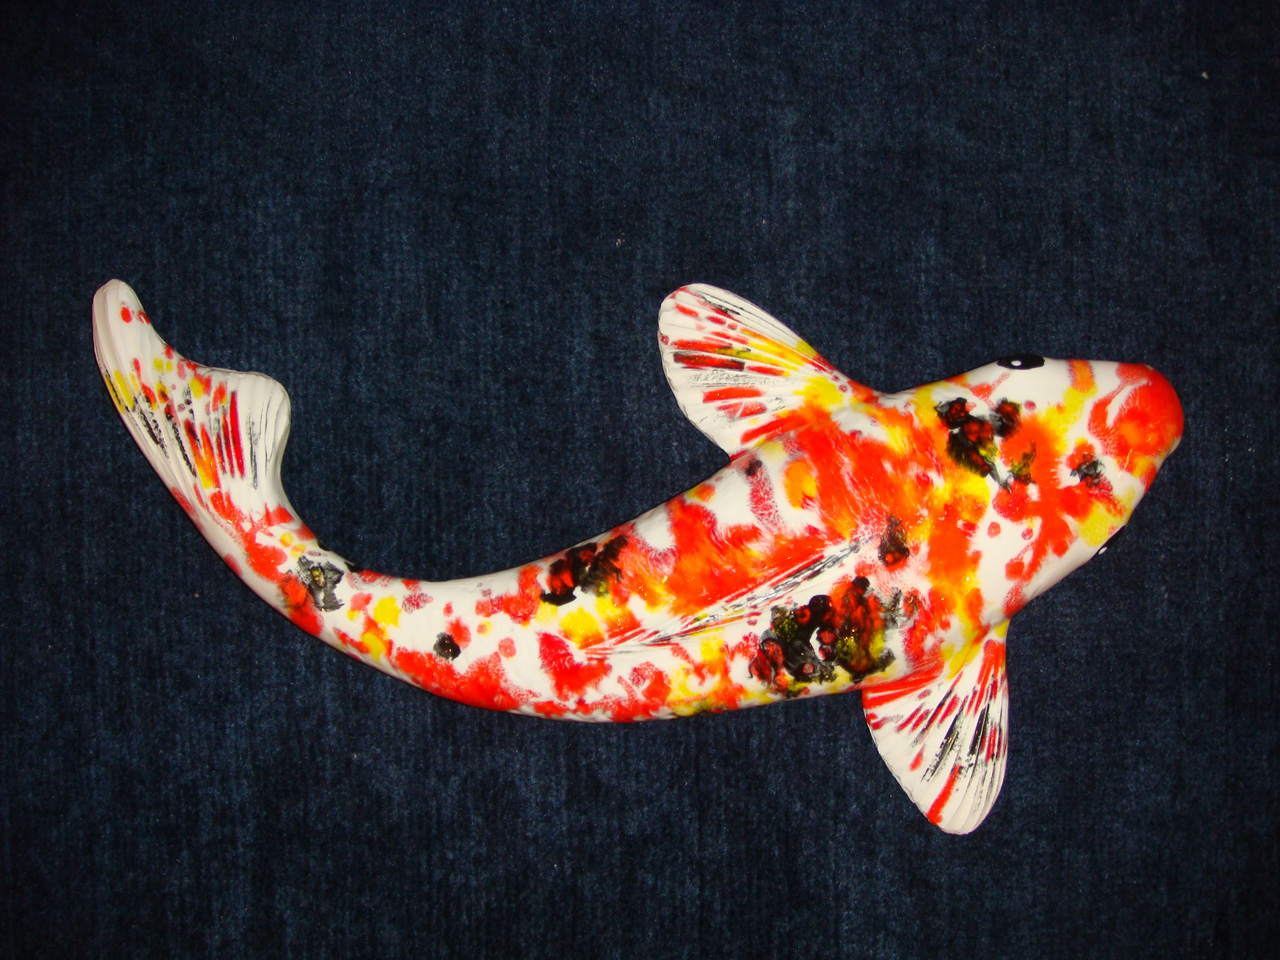 Ceramic Koi by Mark MacKay with orange, yellow, and black glaze